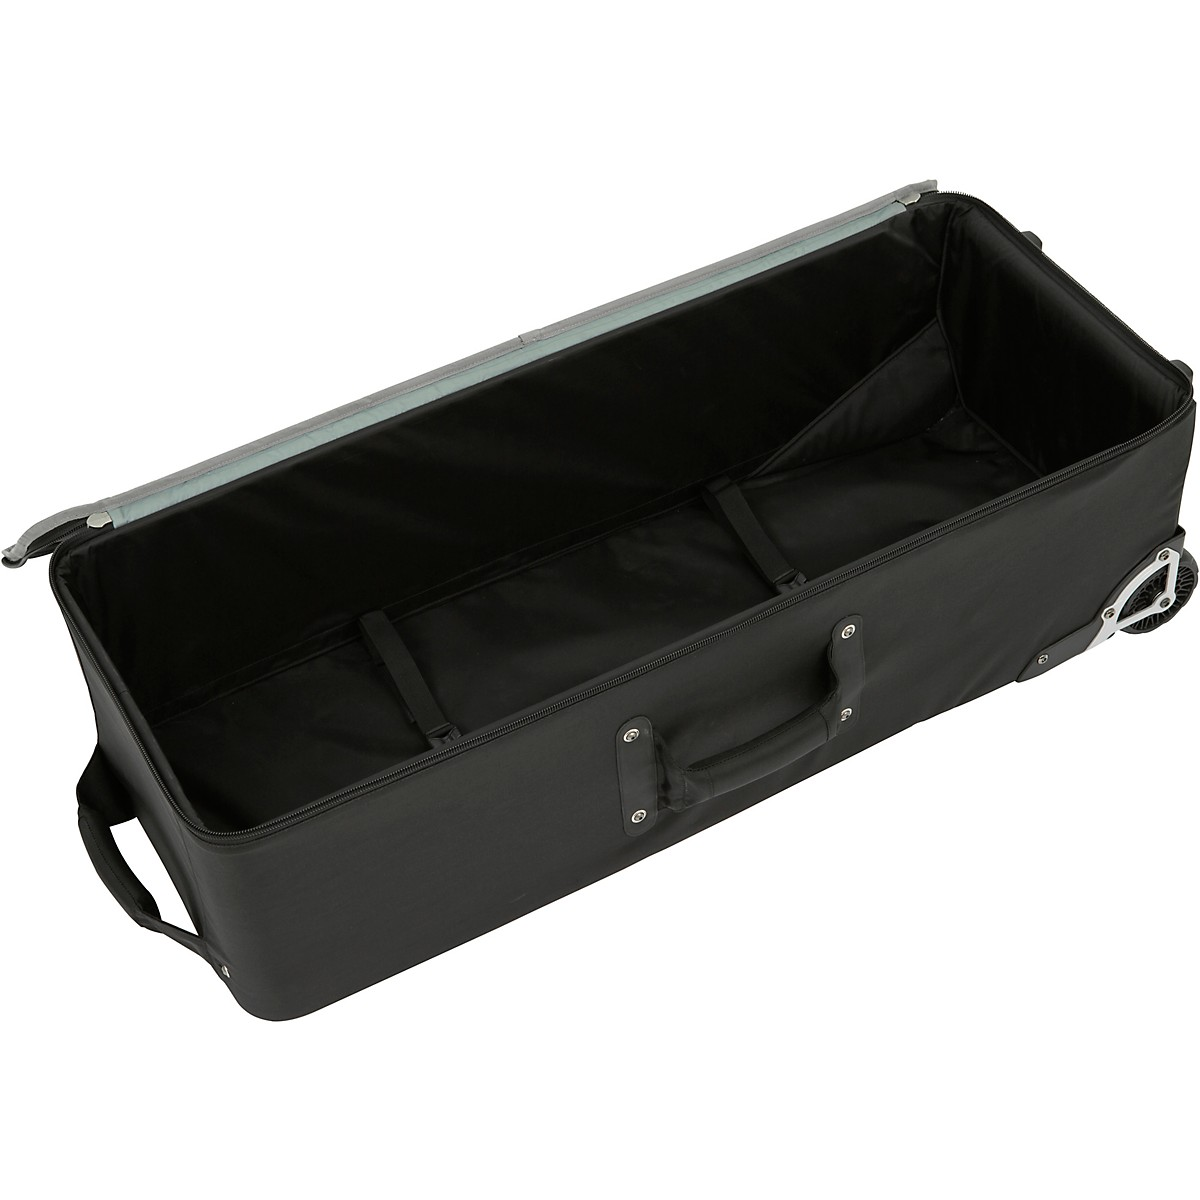 SKB Soft-Sided Mid-Size Drum Hardware Case w/Wheels